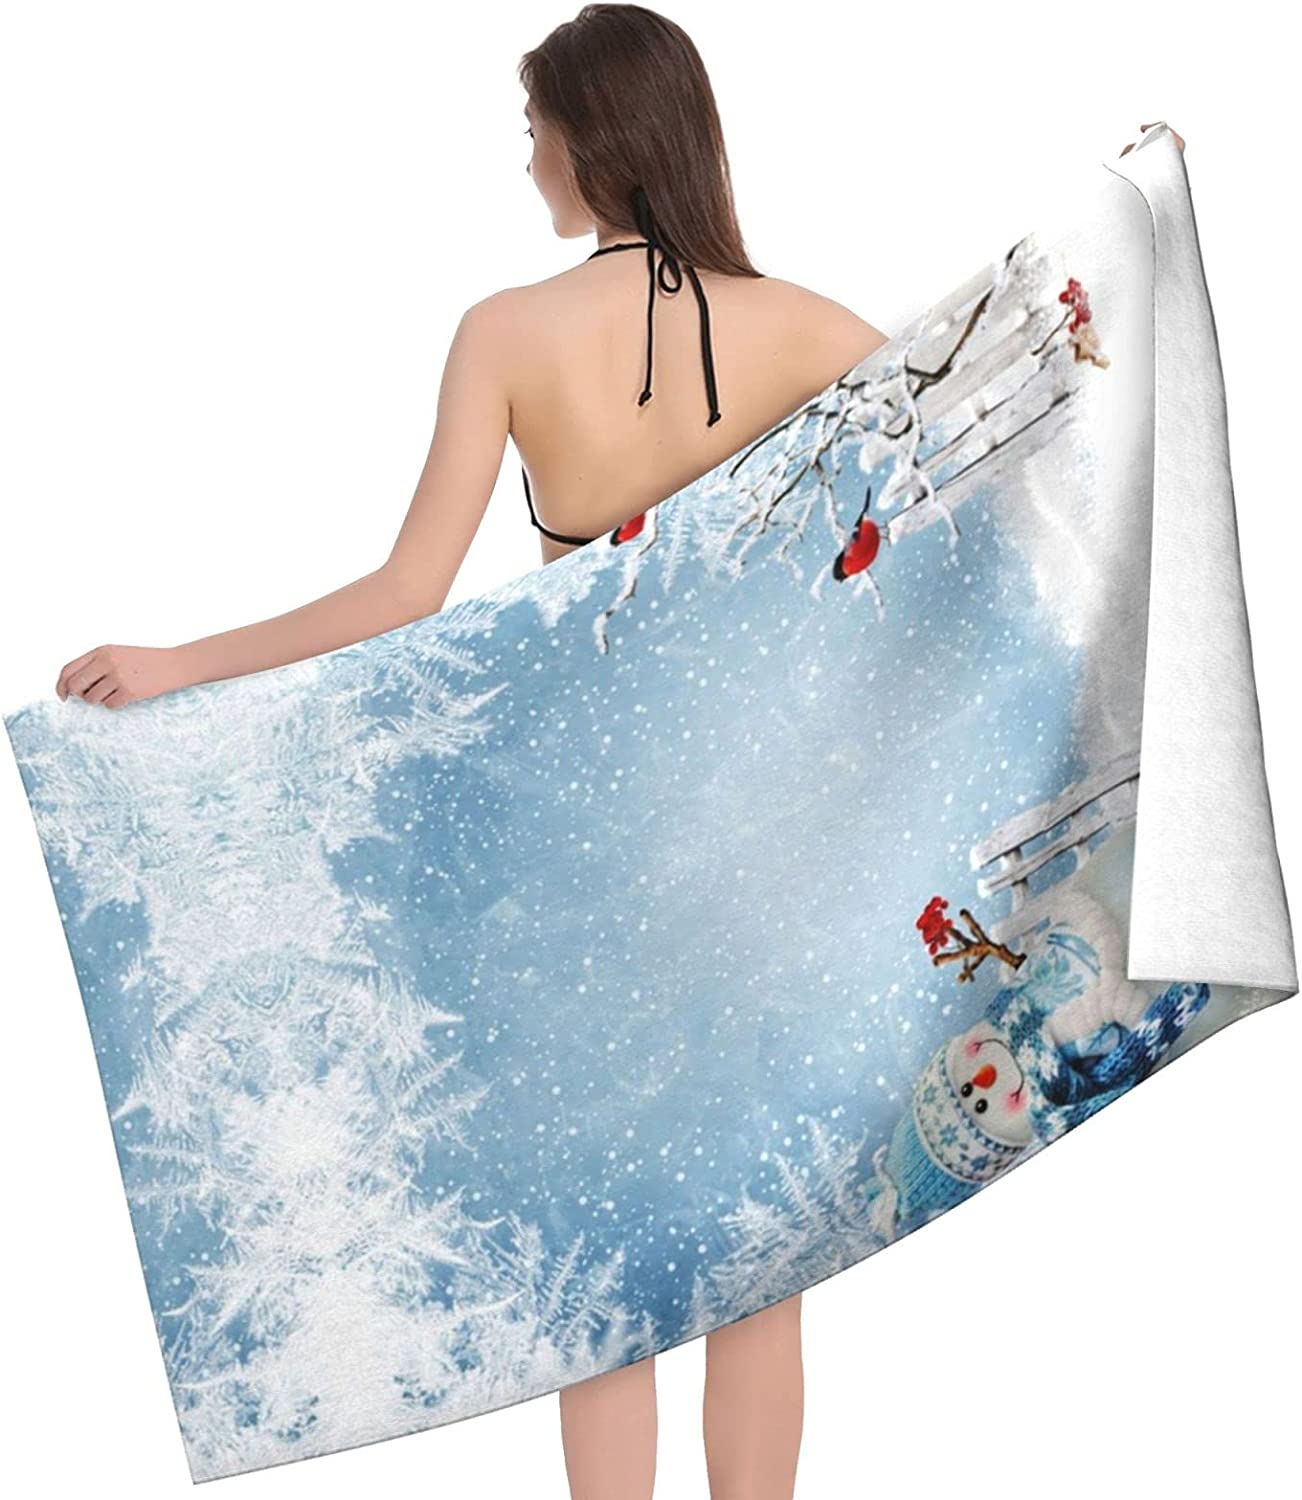 Christmas Snowman Print Adult Beach Regular discount Towels Los Angeles Mall - Towel Double